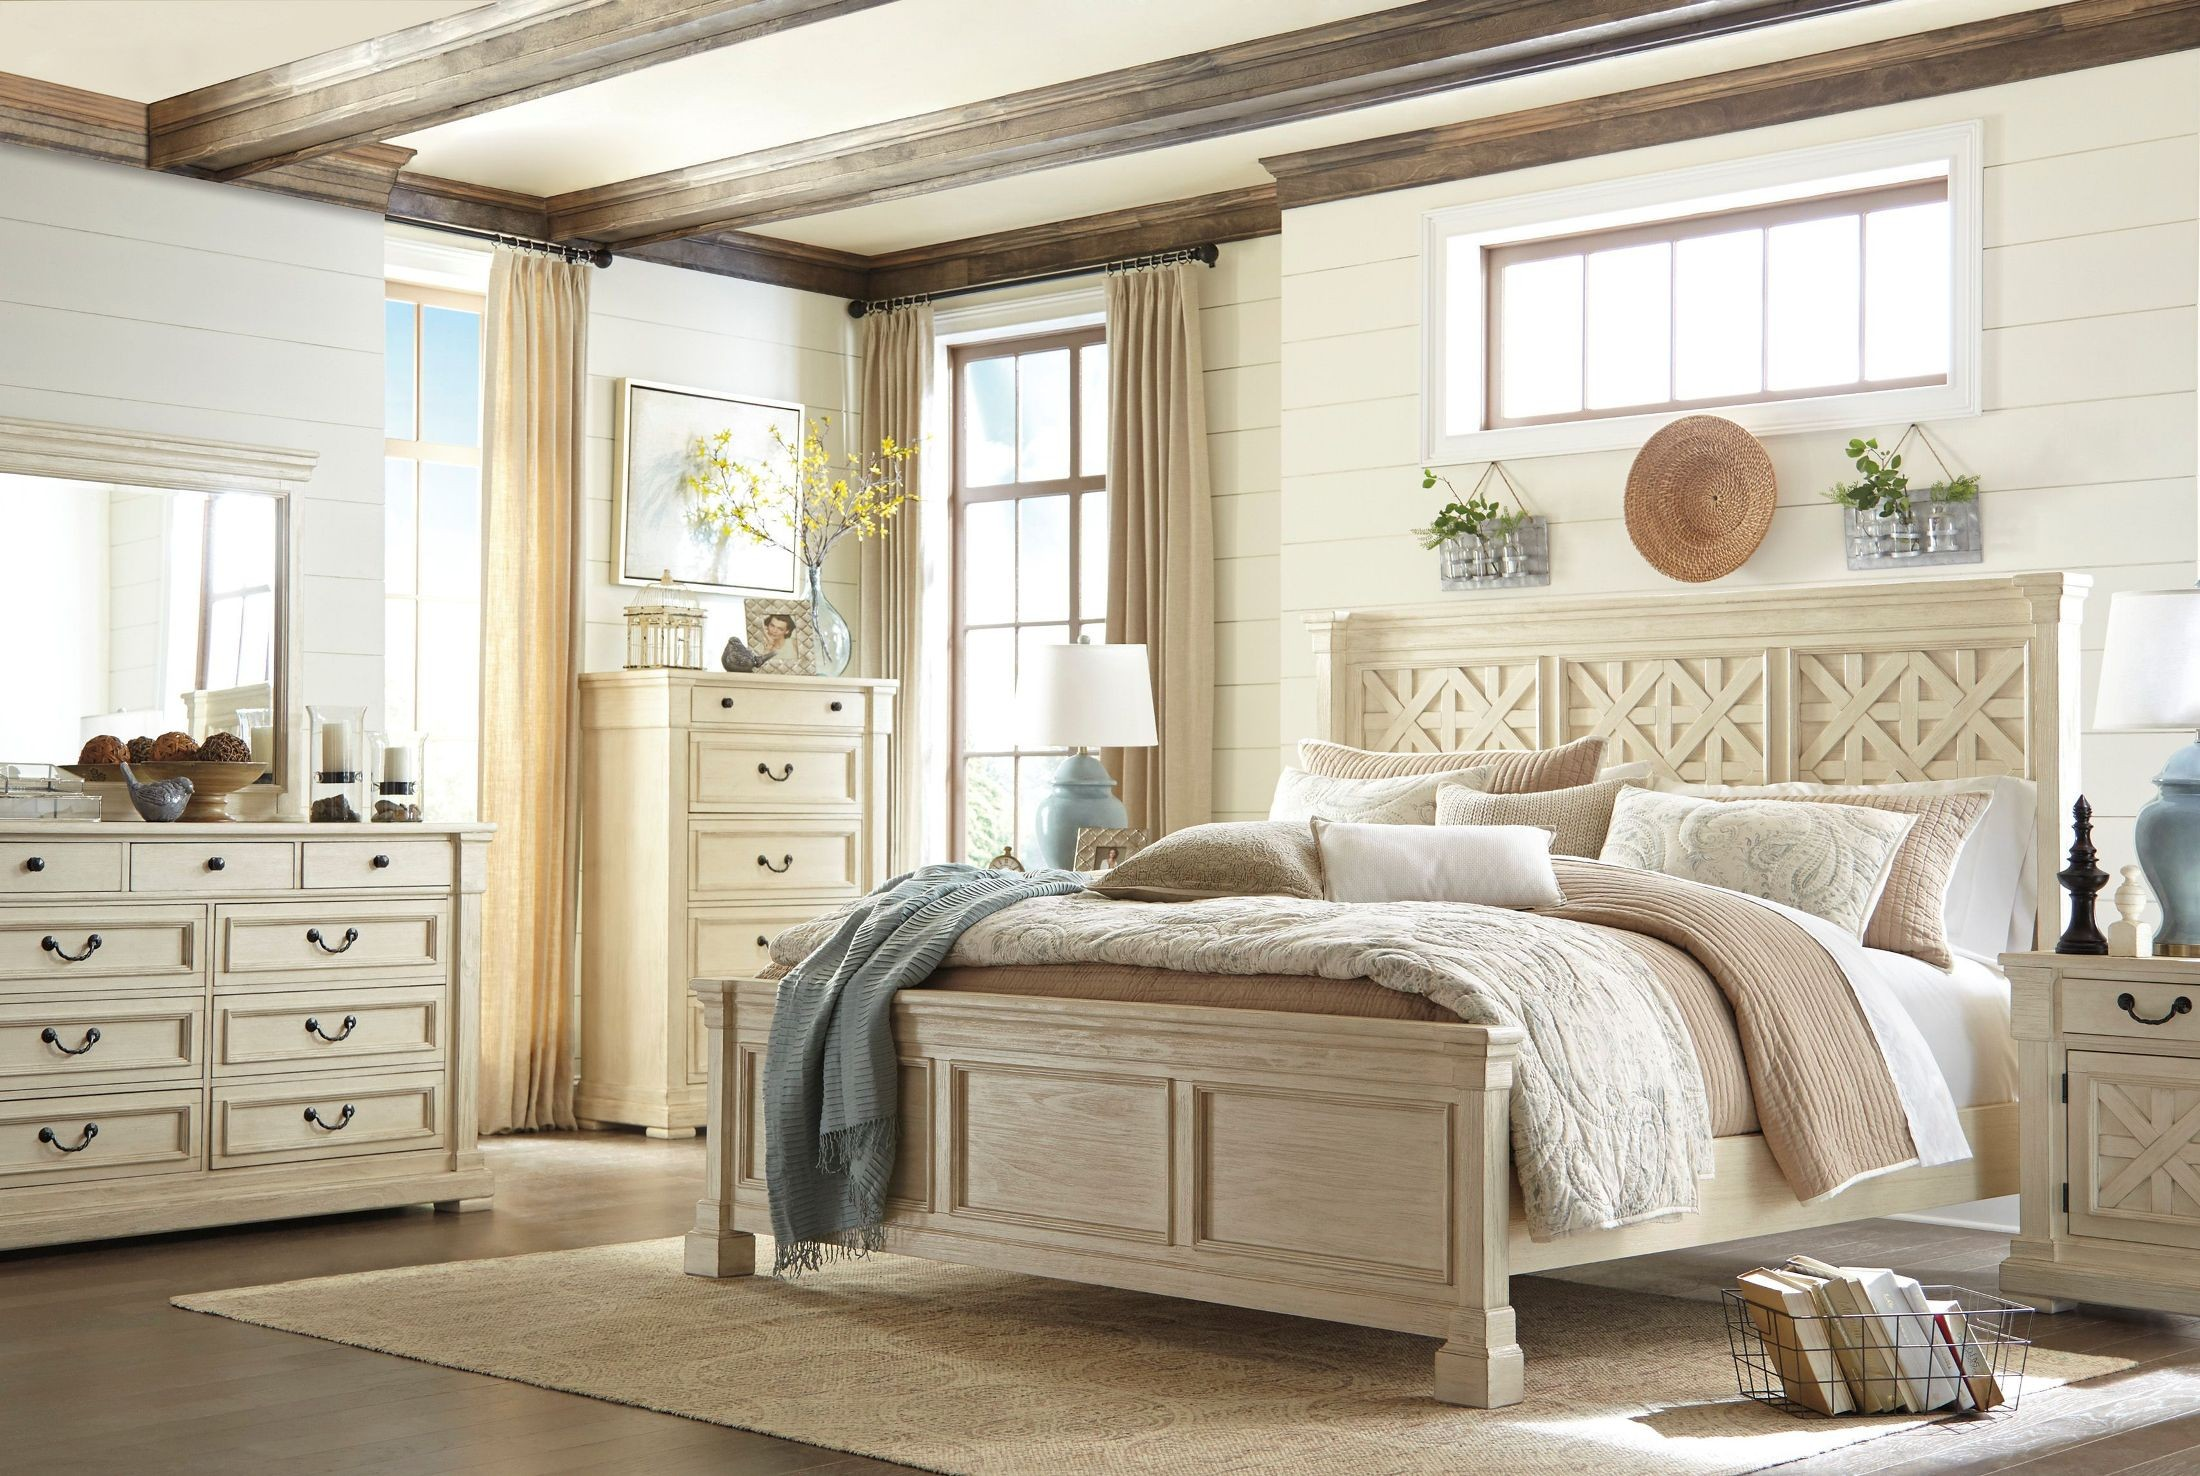 Maribel 3 pc bedroom dresser mirror amp queen full panel headboard - 2295394